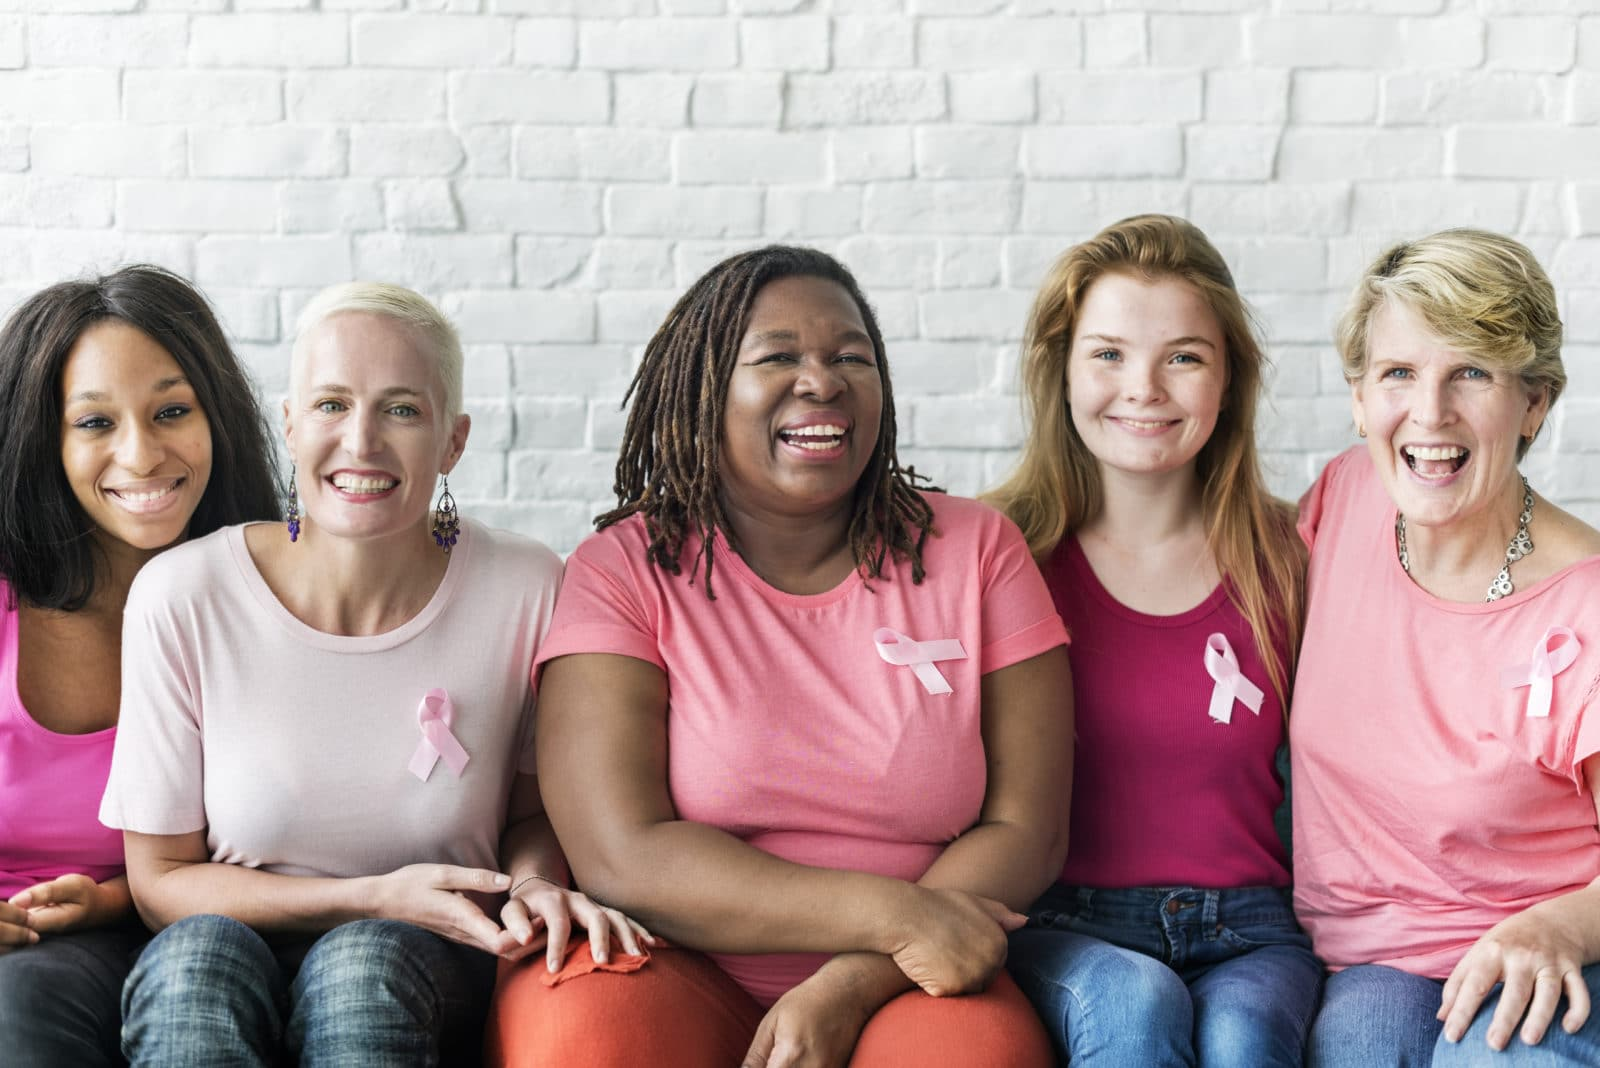 Here's How to Reduce Your Cancer Risk During Breast Cancer Awareness Month